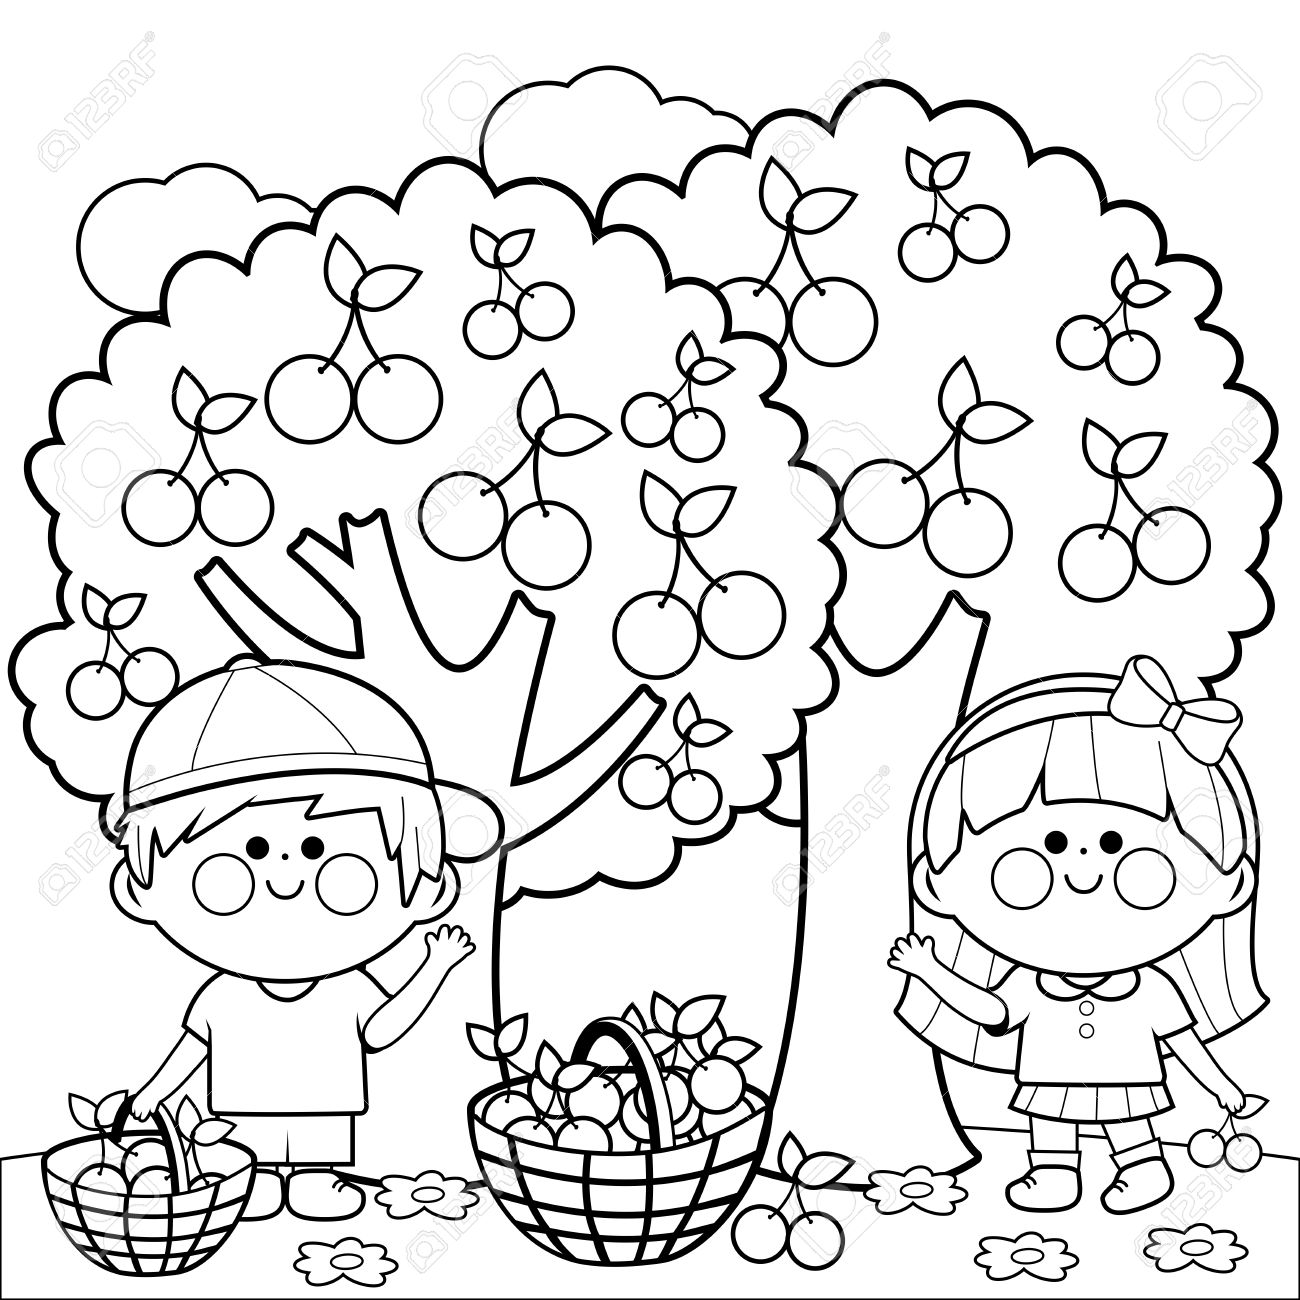 kids harvesting cherries coloring book page royalty free cliparts